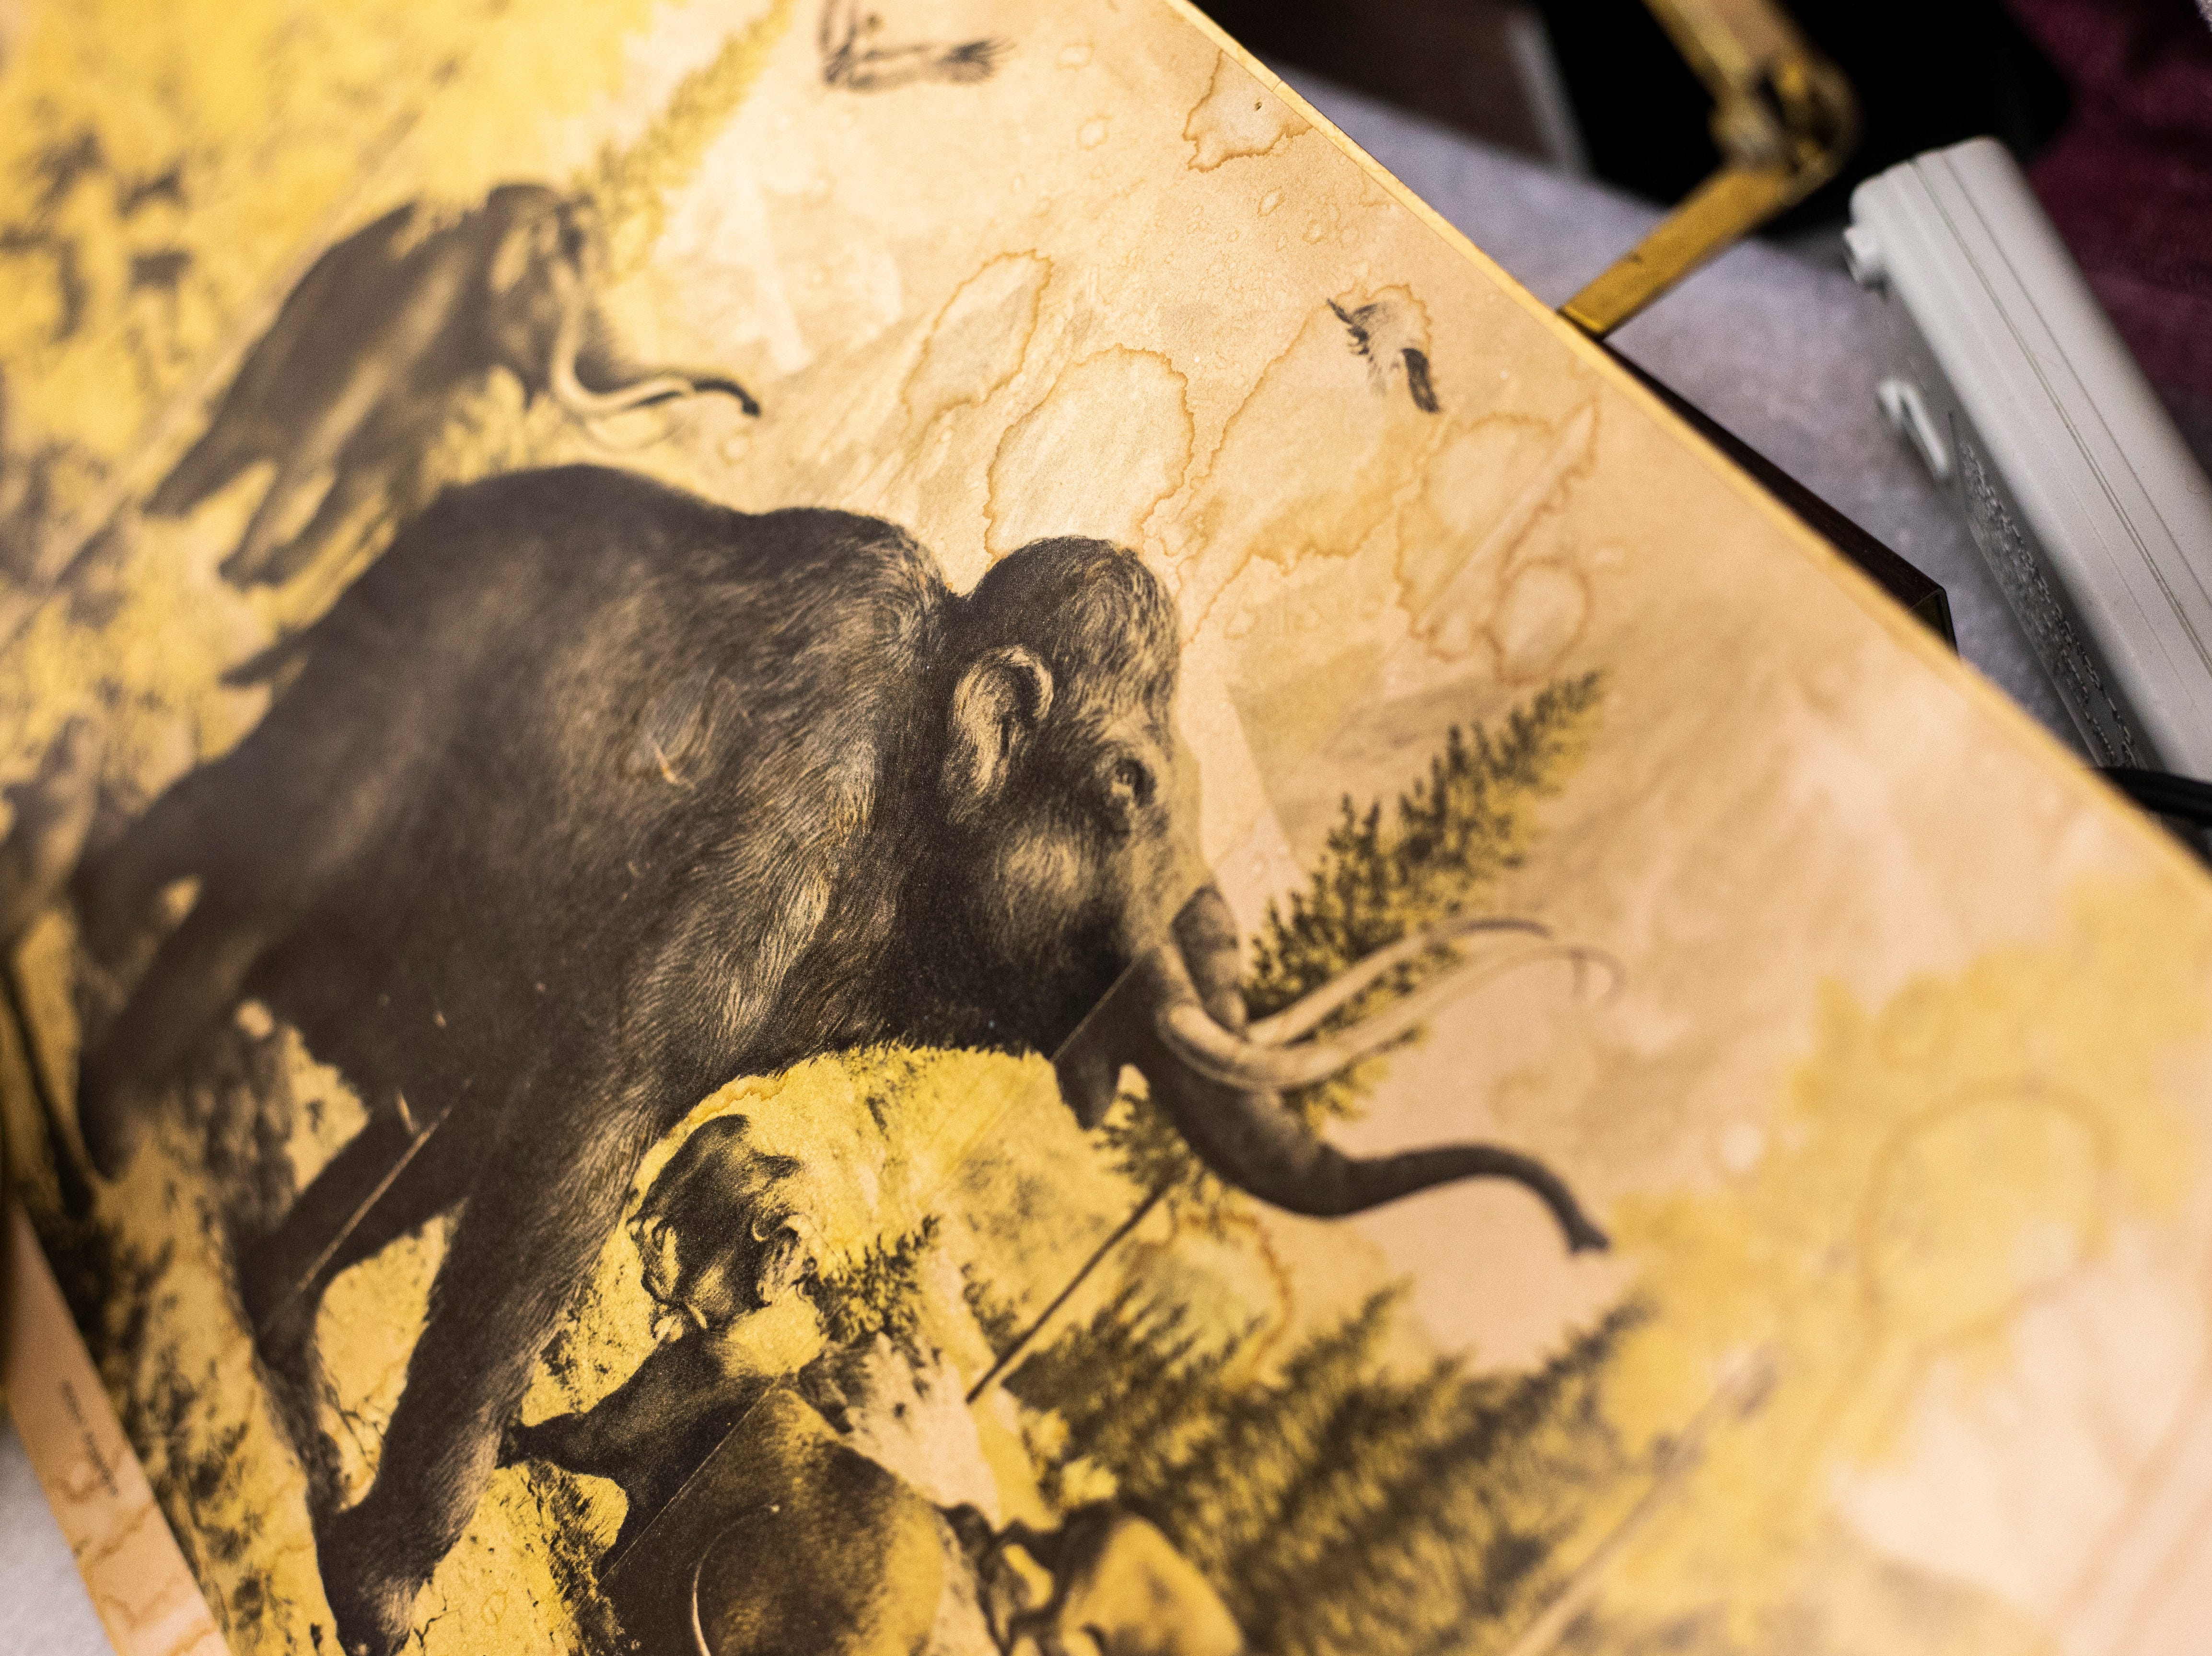 A piece of artwork featuring ice-age-era animals, Tuesday, May 14, 2019, at the University of Iowa Paleontology Repository on the University of Iowa campus in Iowa City, Iowa.